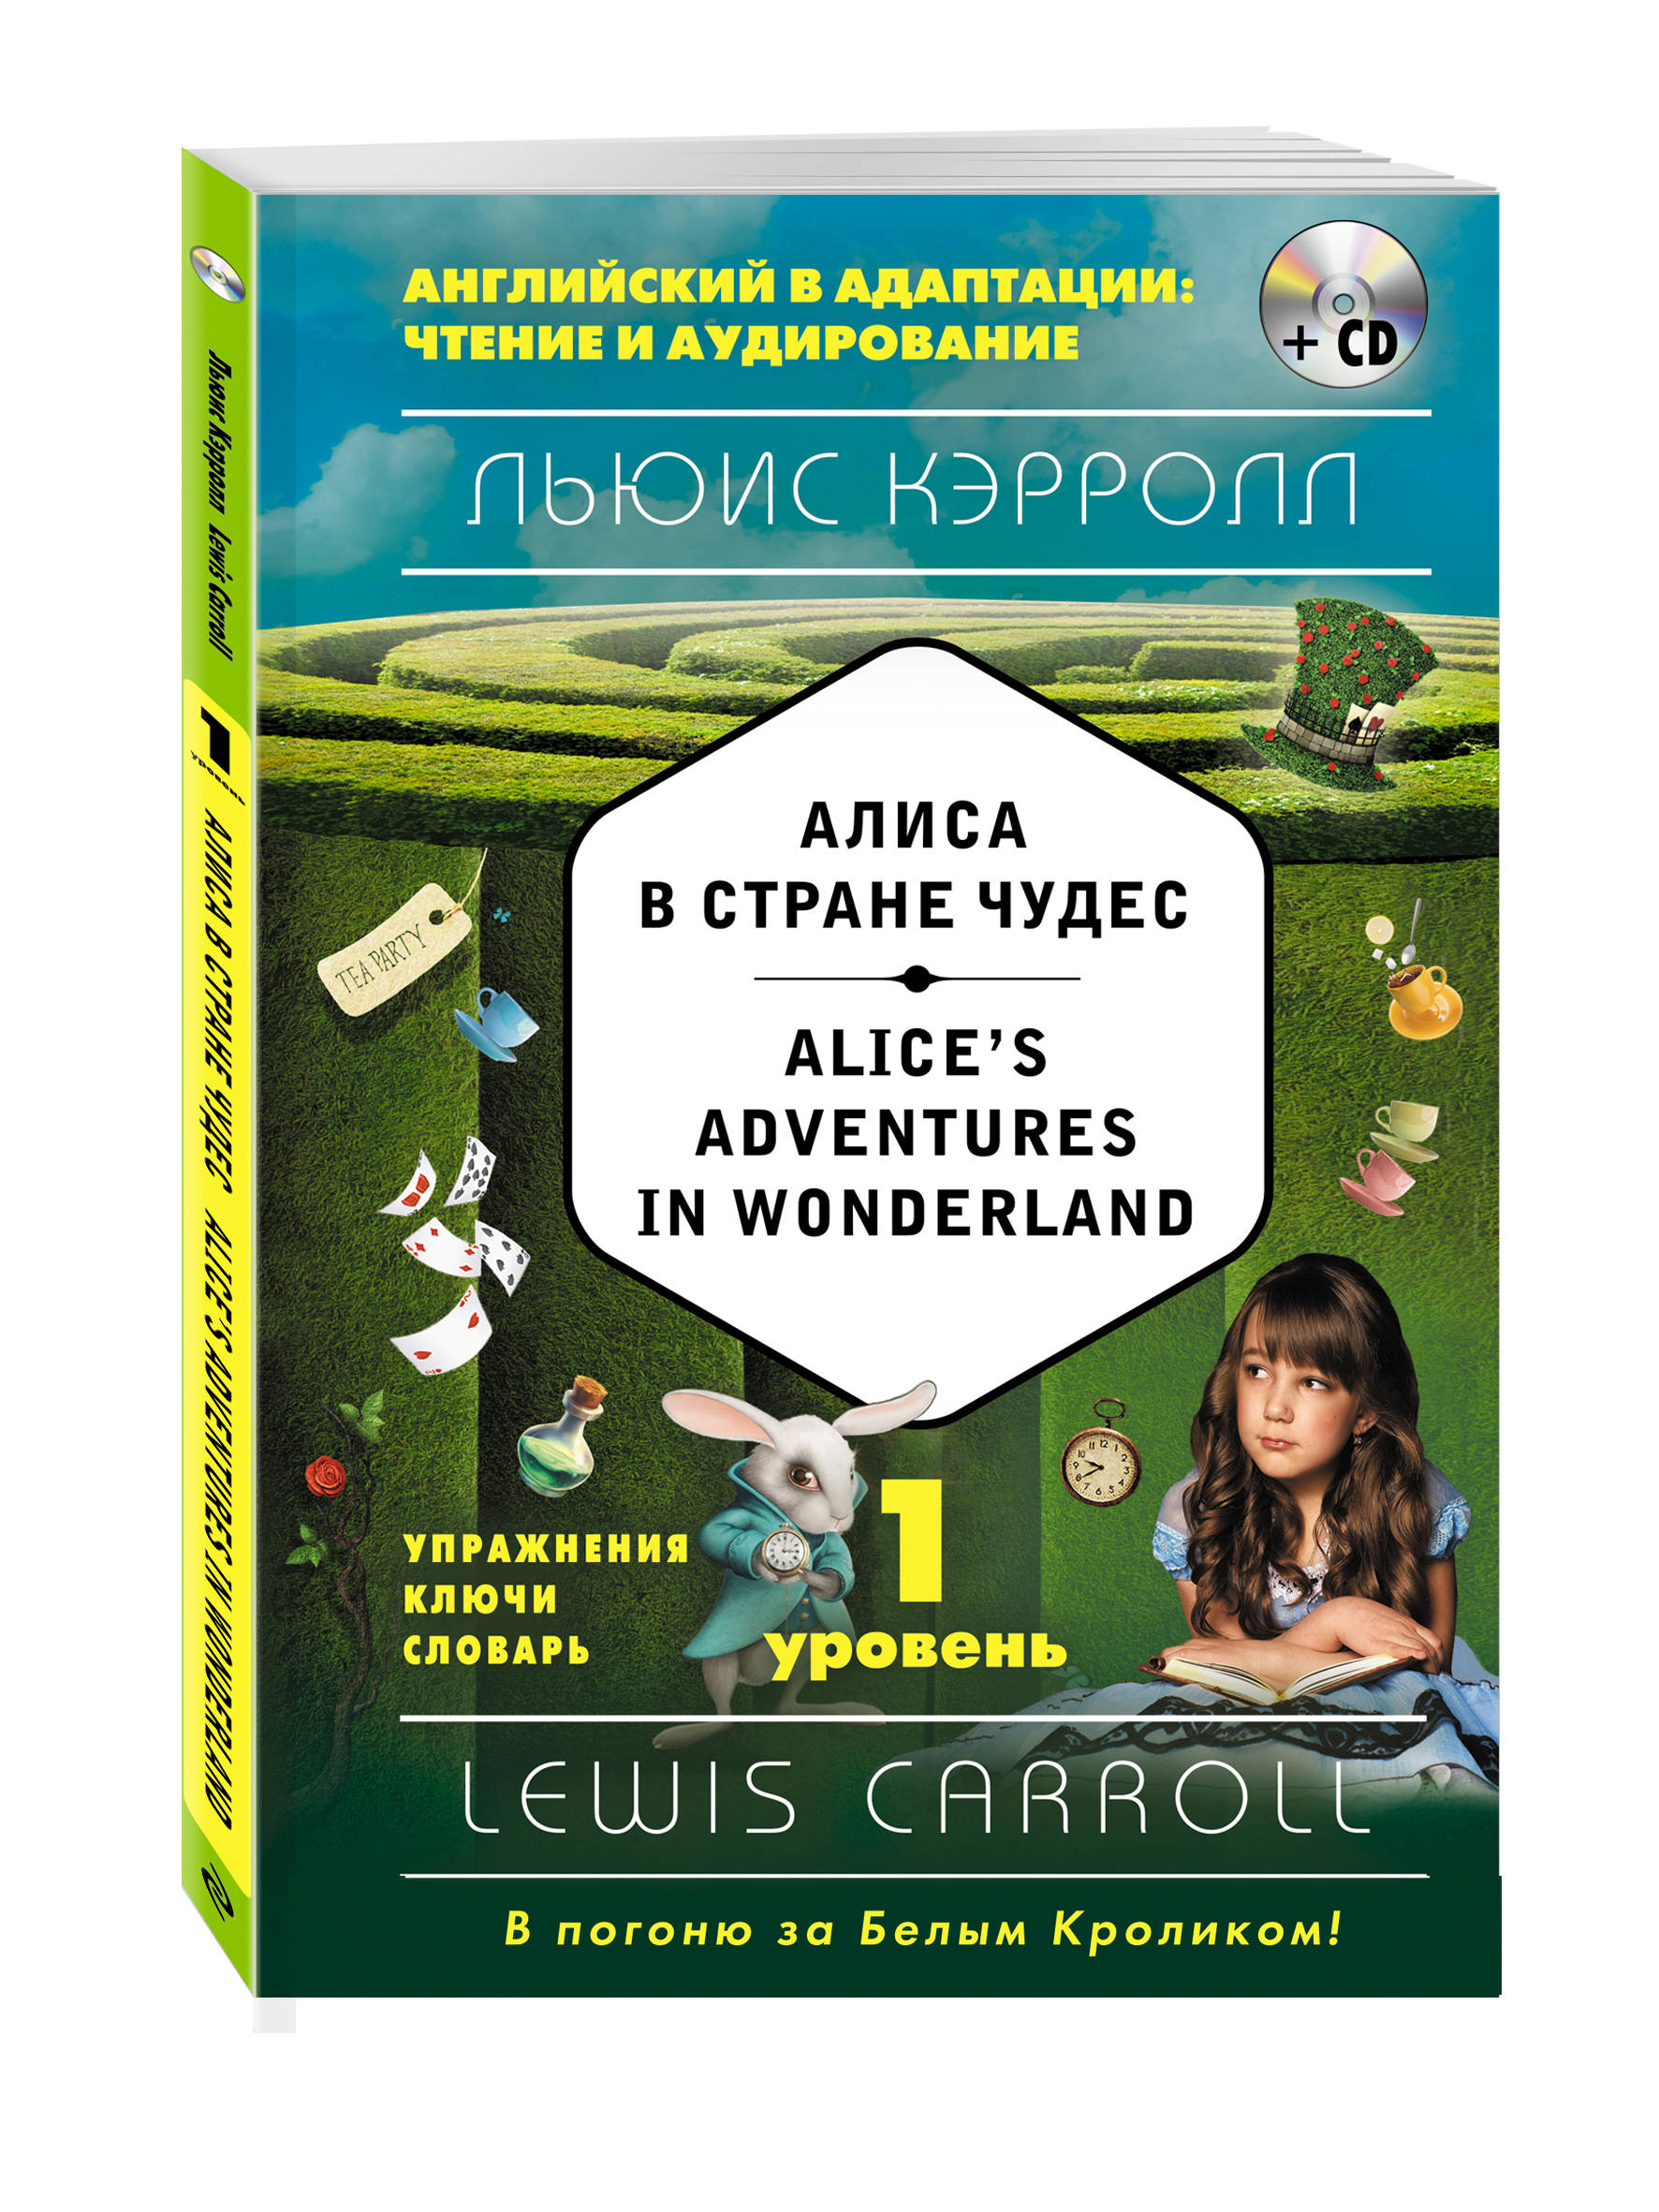 Кэрролл Л. Алиса в Стране чудес = Alice's Adventures in Wonderland (+CD). 1-й уровень alice s adventures in wonderland уровень 1 cd